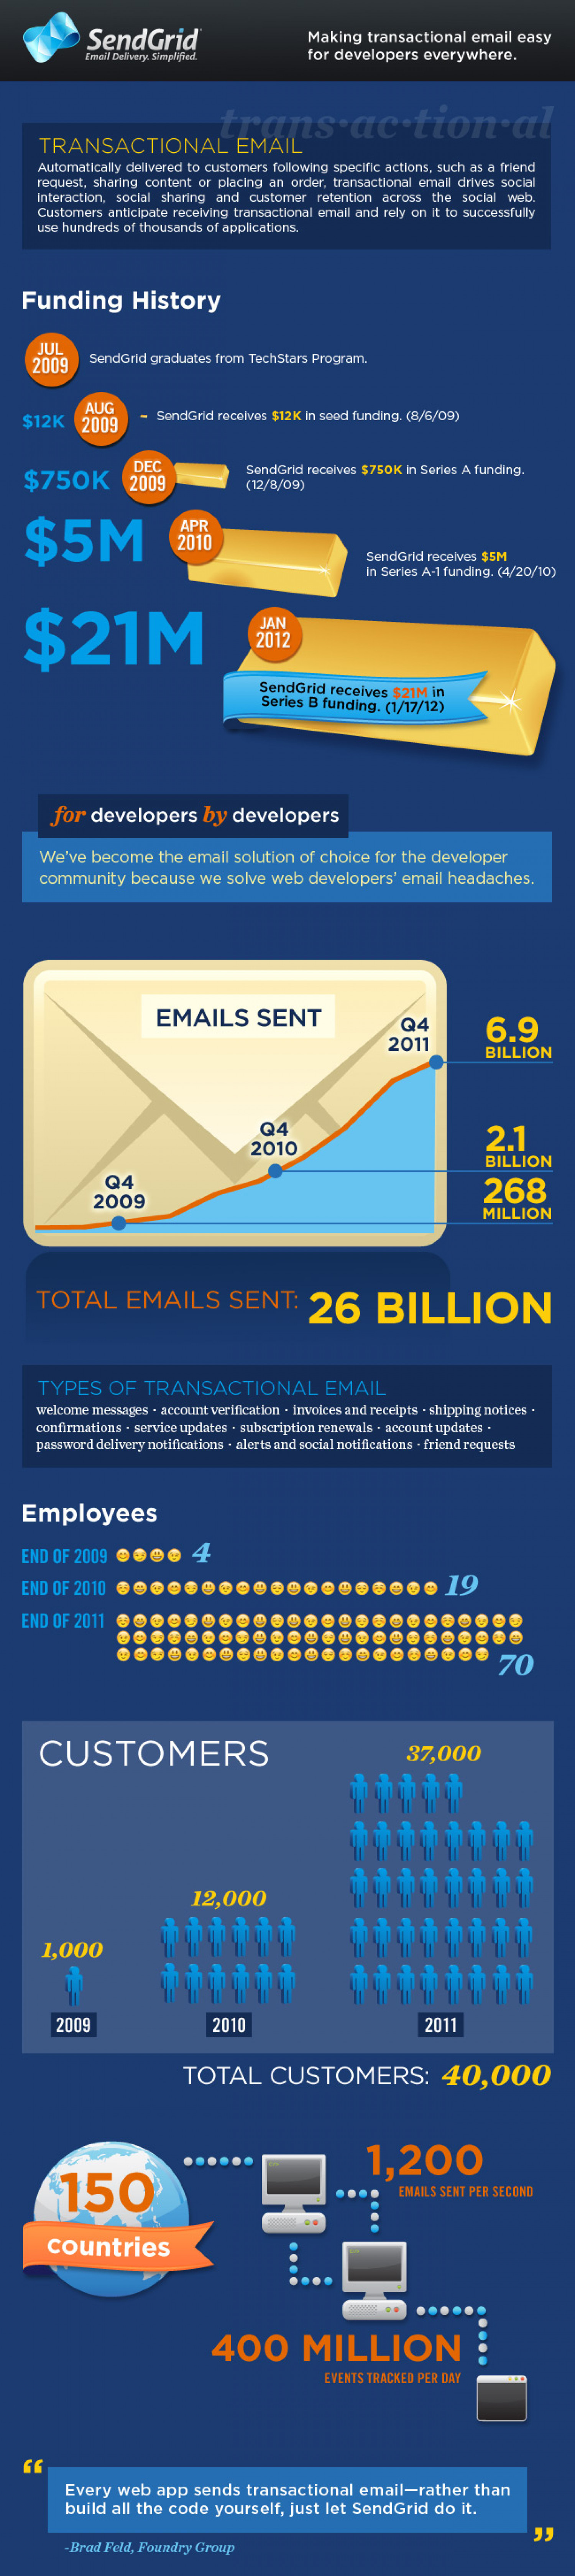 SendGrid Raises $21 Million Infographic